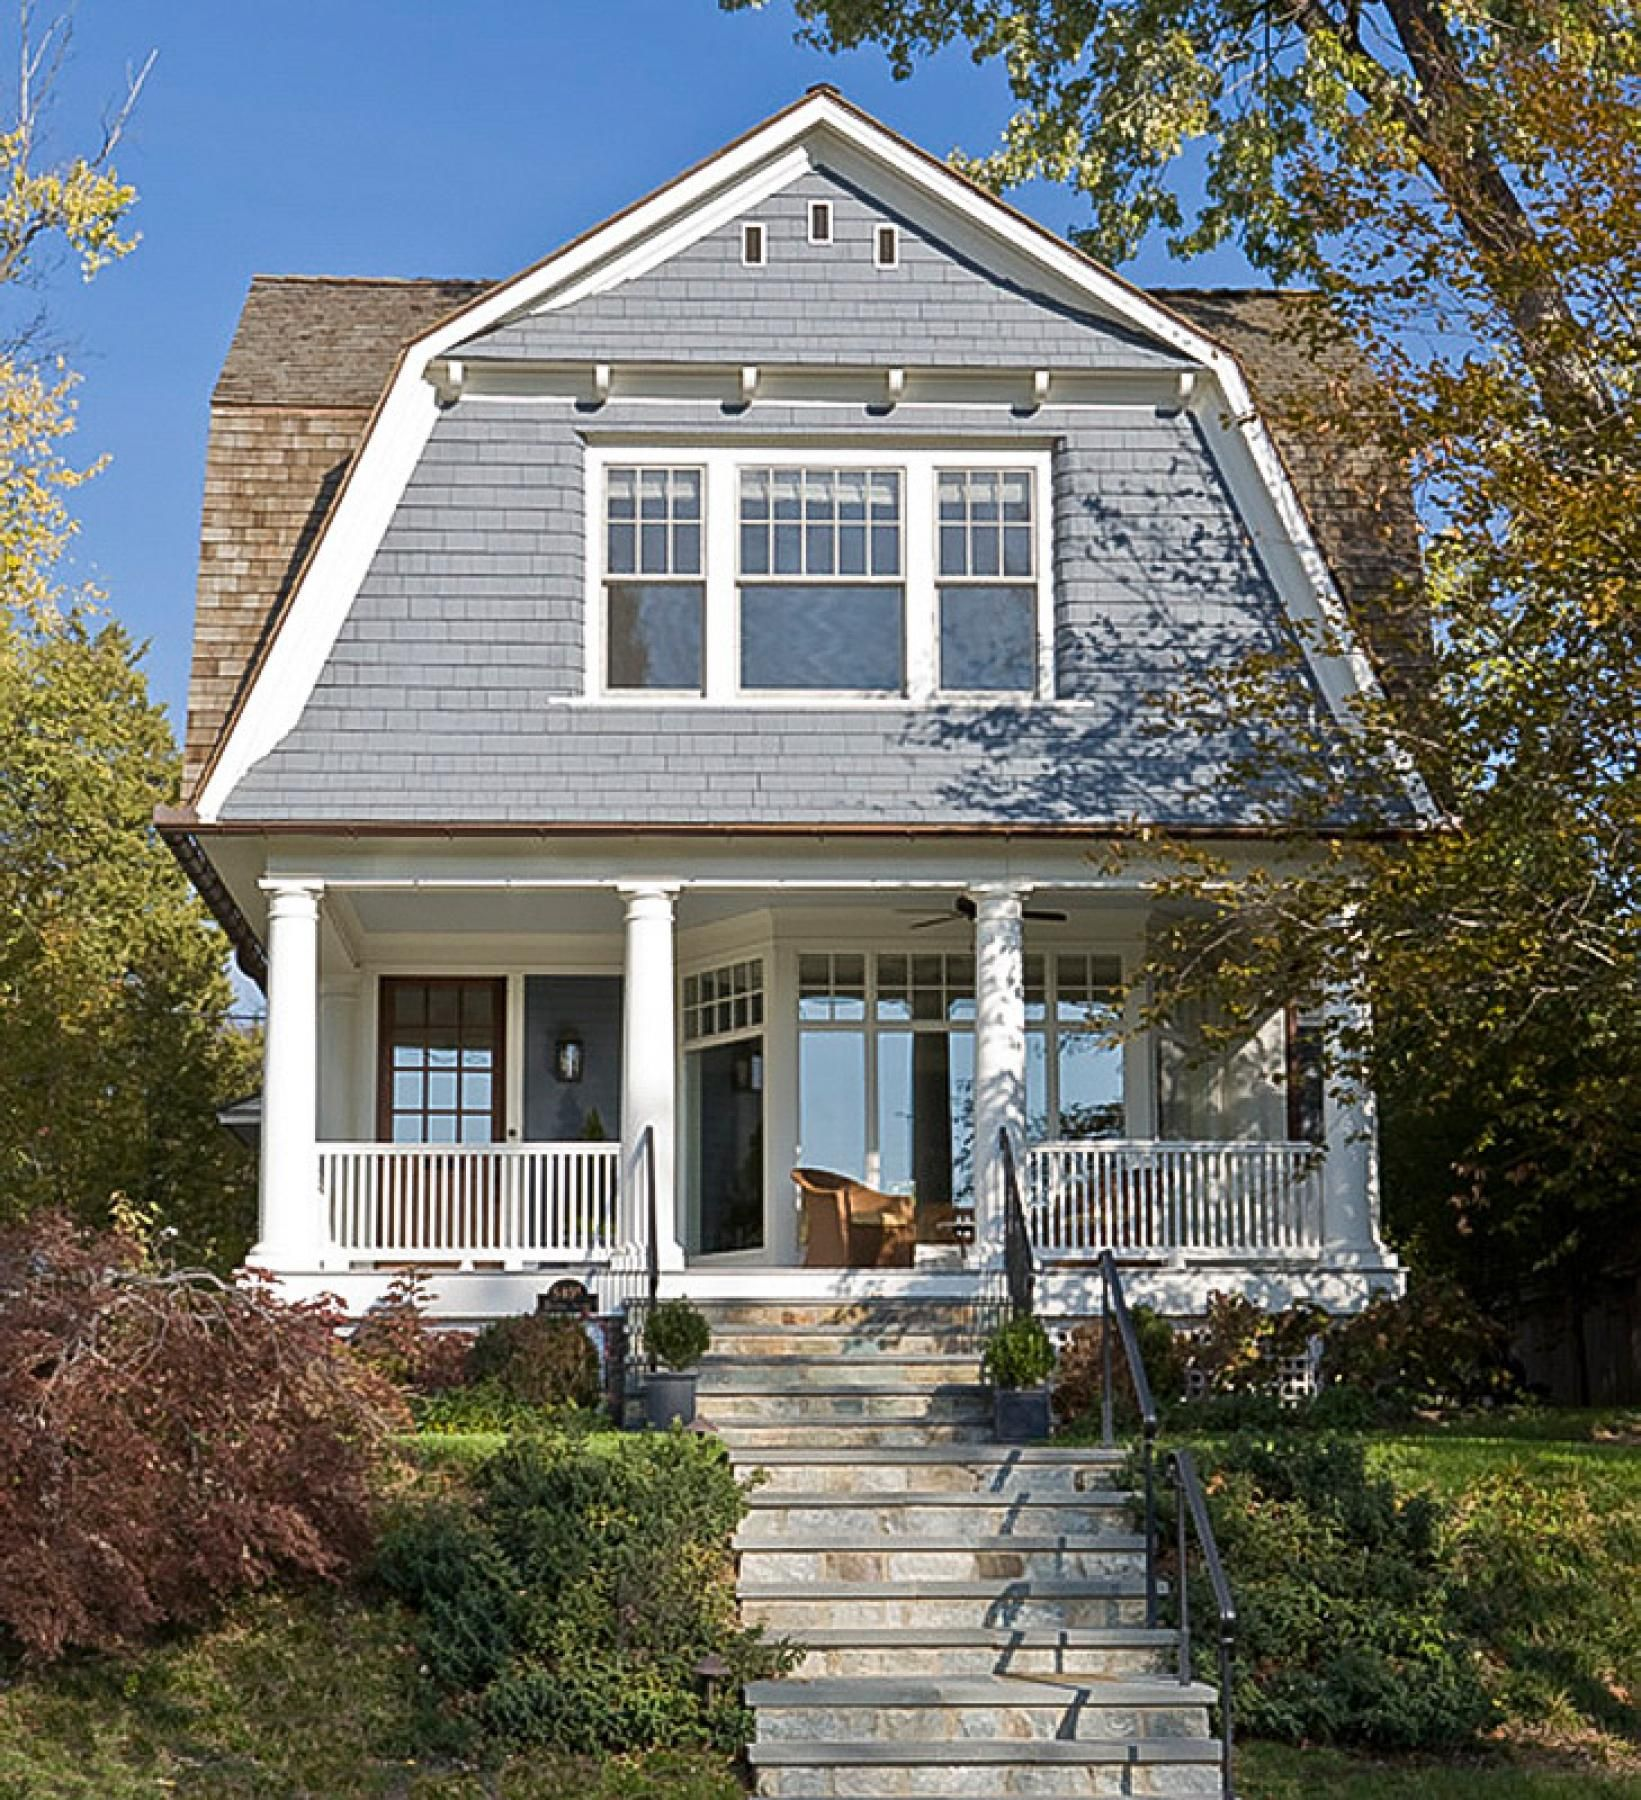 dutch gable hip roof with metal shingles and solar panels roof dutch gable hip roof with metal shingles and solar panels roof ideas and designs pinterest roof types roof ideas and roof styles